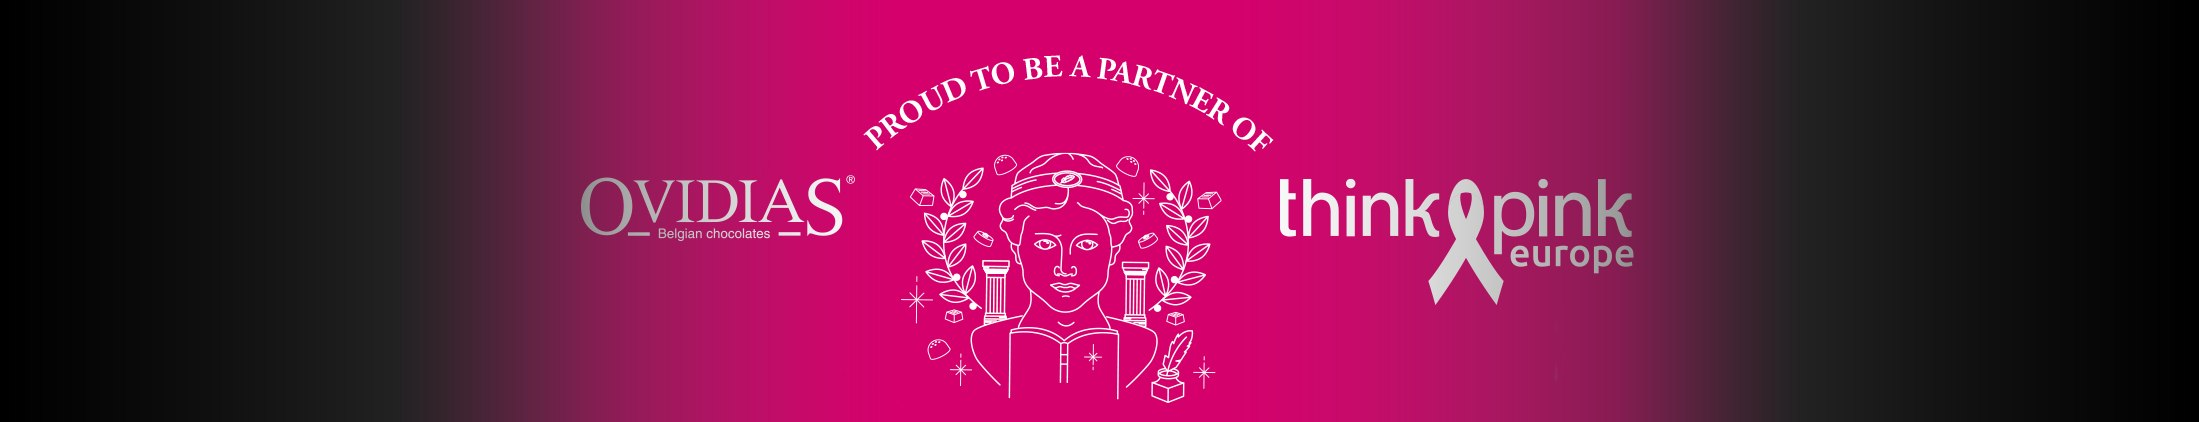 Ovidias is a proud partner of Think Pink Europe